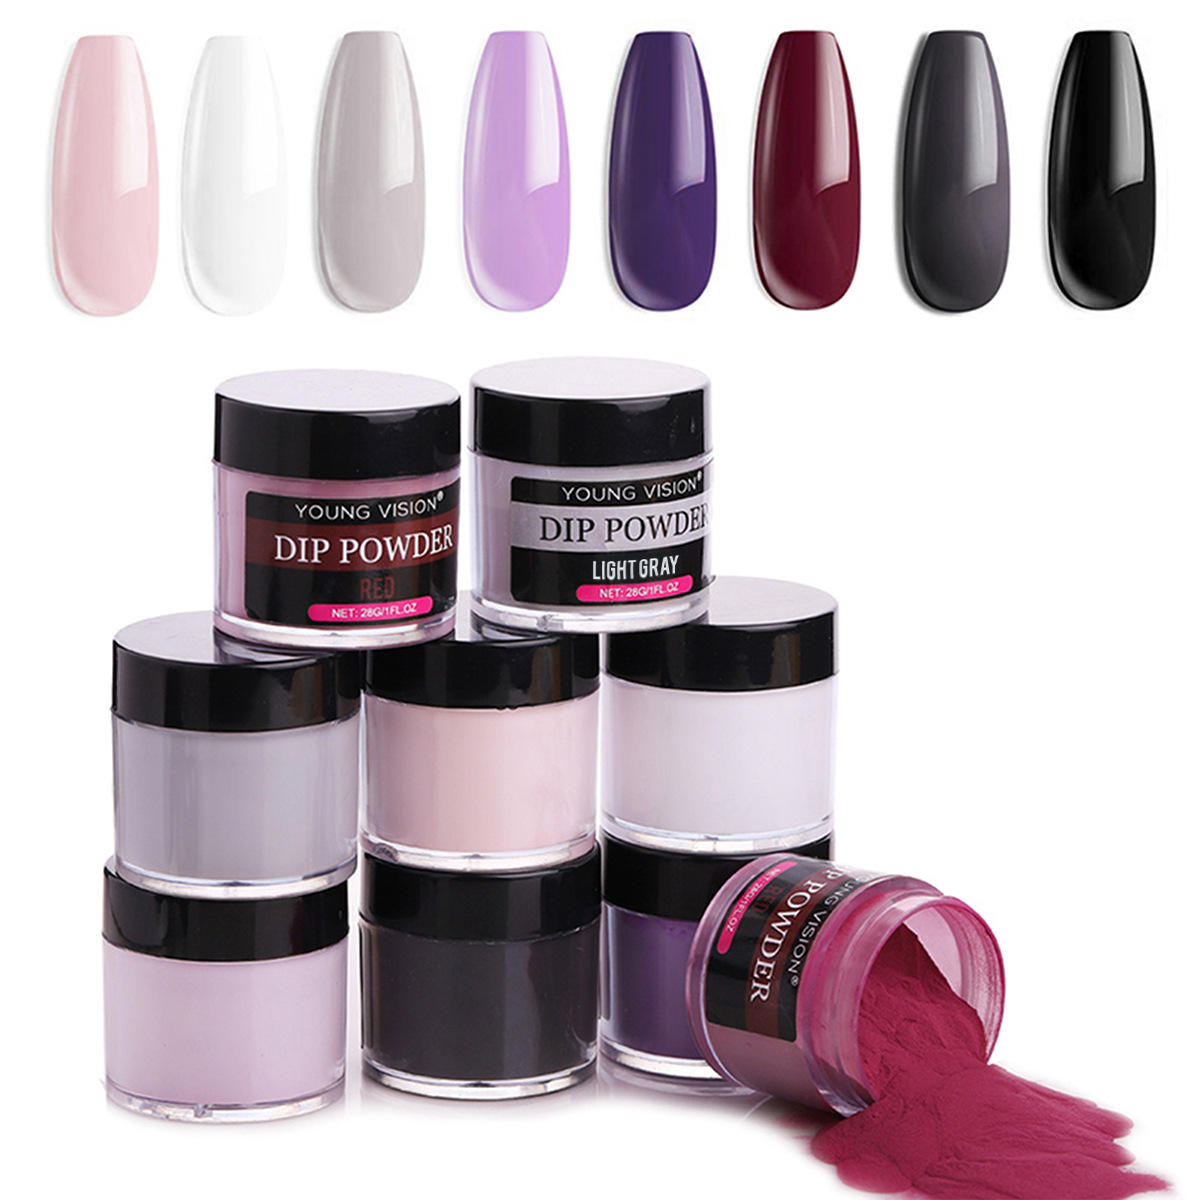 High quality light free curing quick nail polish powder, acrylic nail polish powder suitable for nail salons